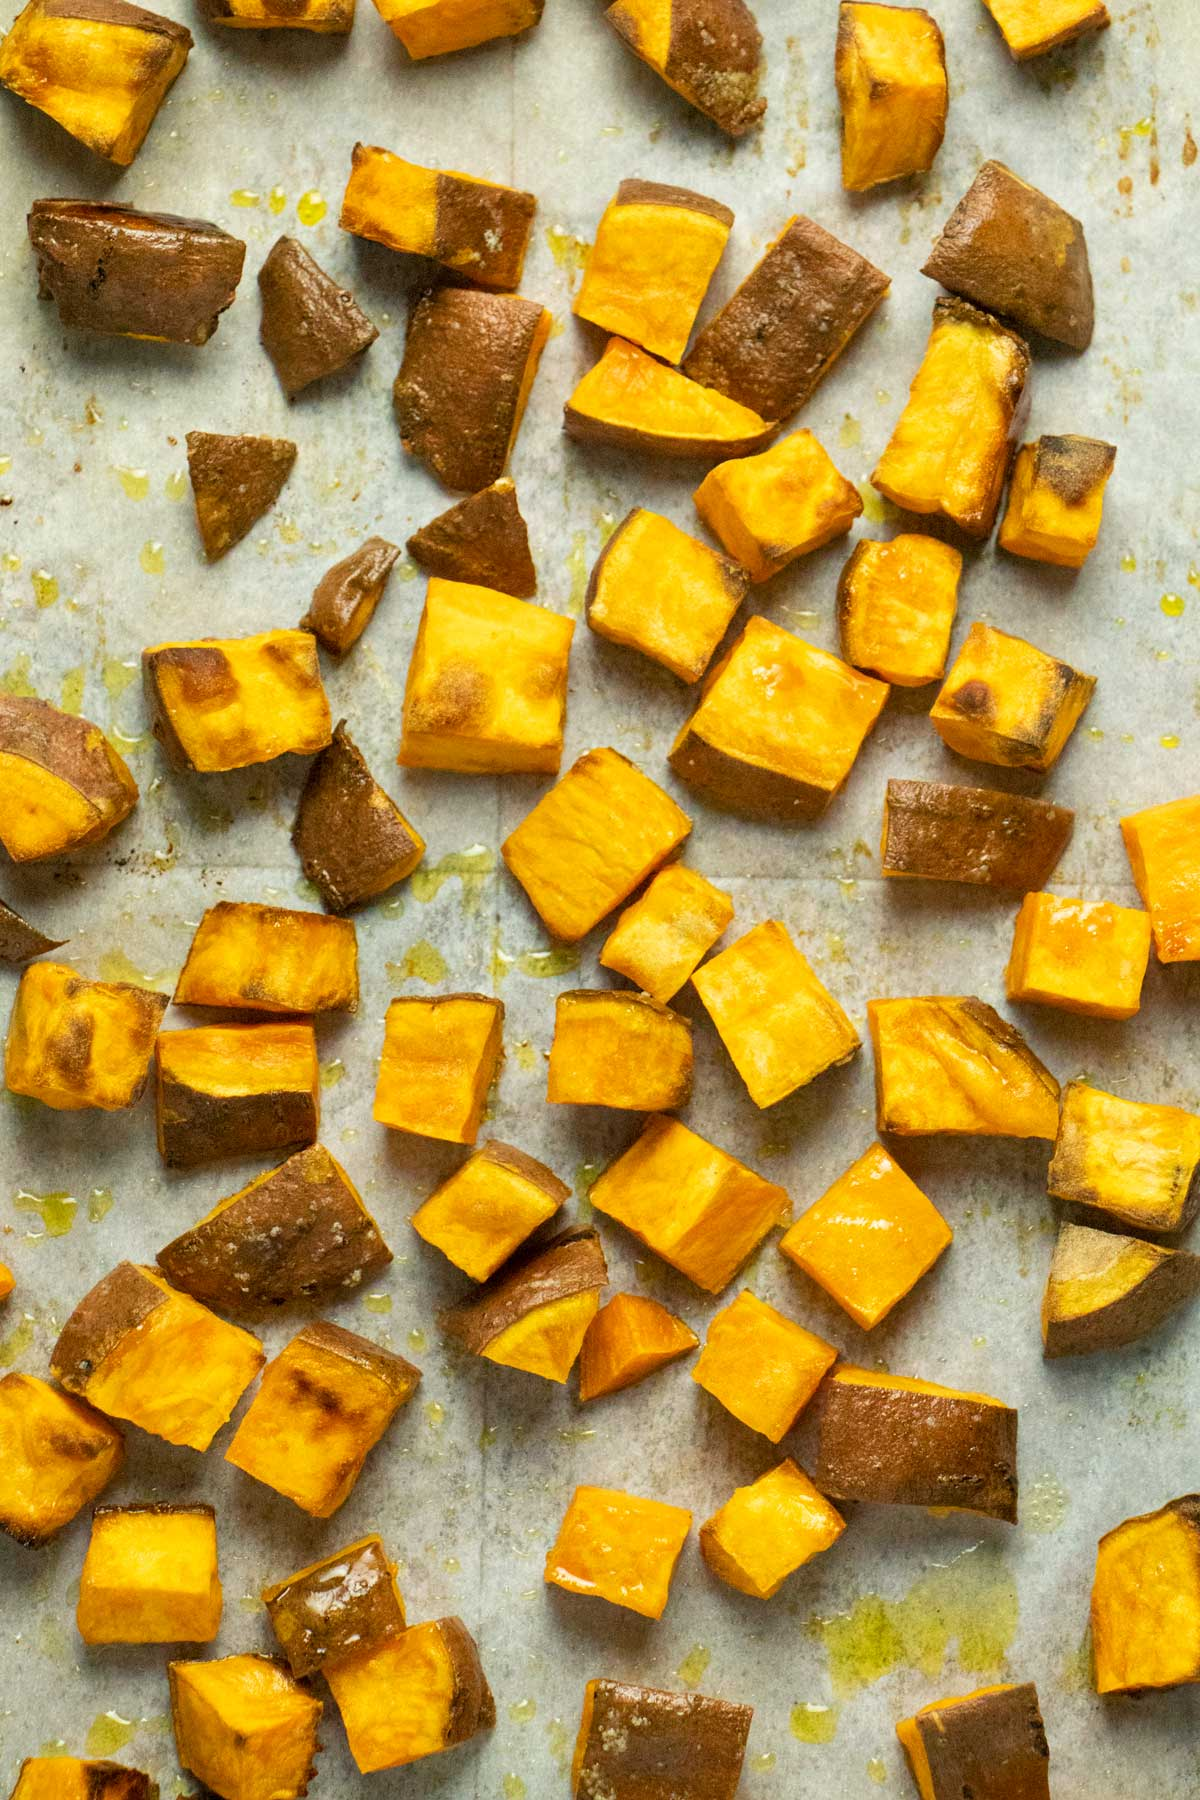 roasted sweet potato cubes on the baking sheet, fresh out of the oven